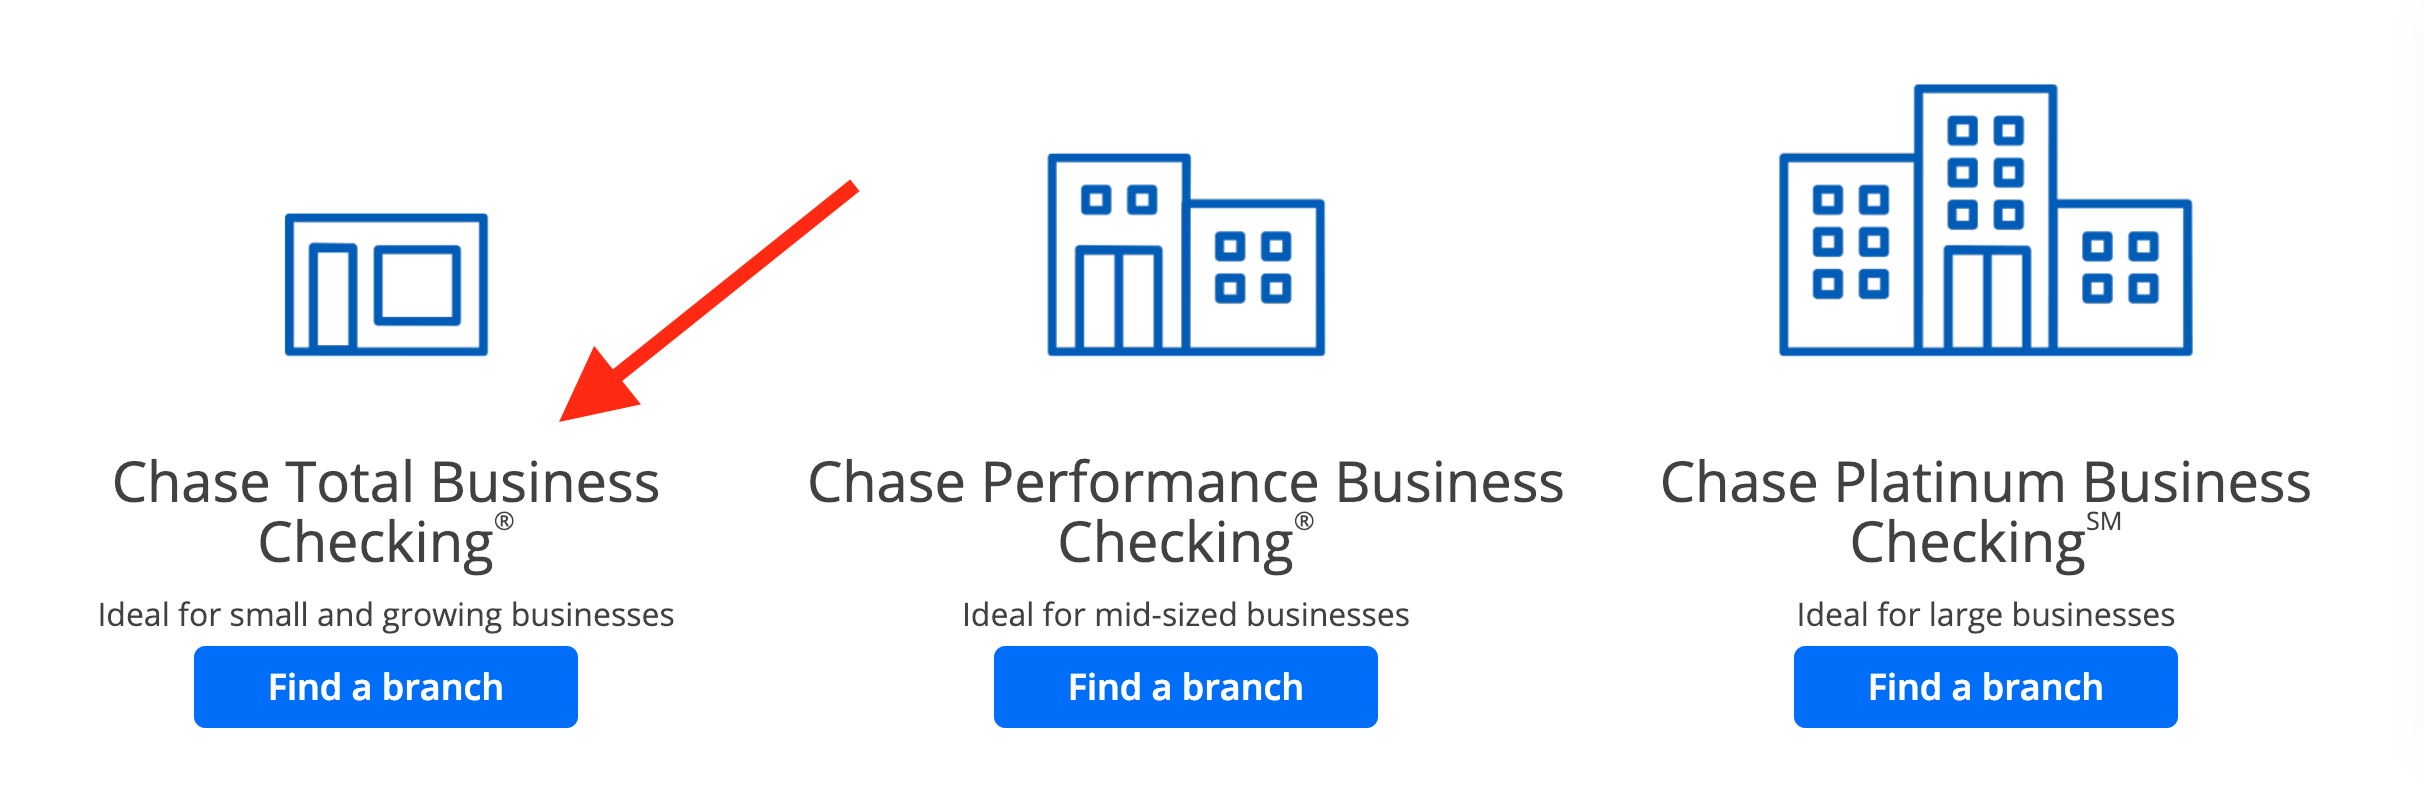 requirements to open chase checking account